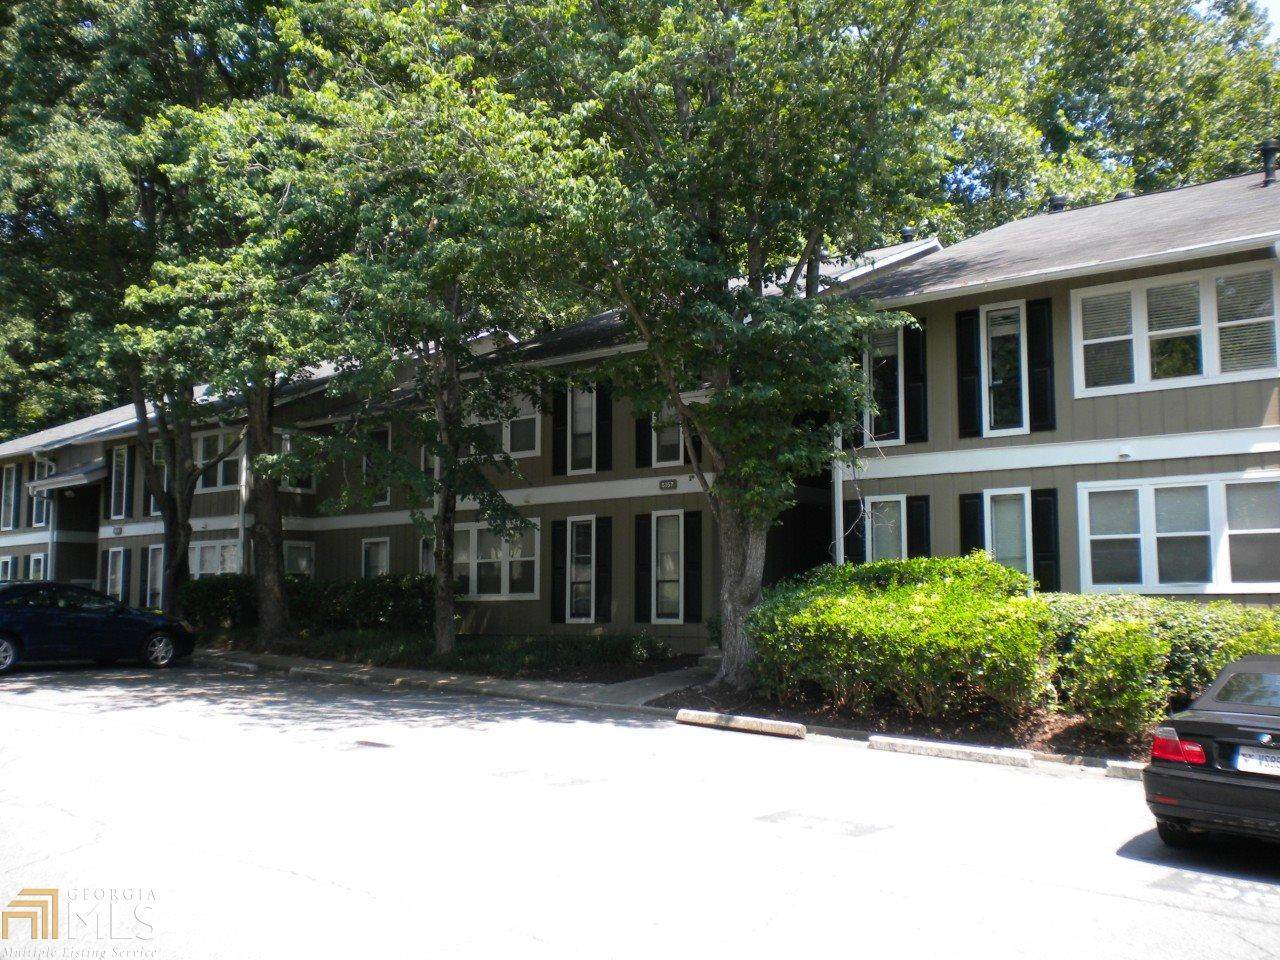 5157 Roswell Rd - Photo 1